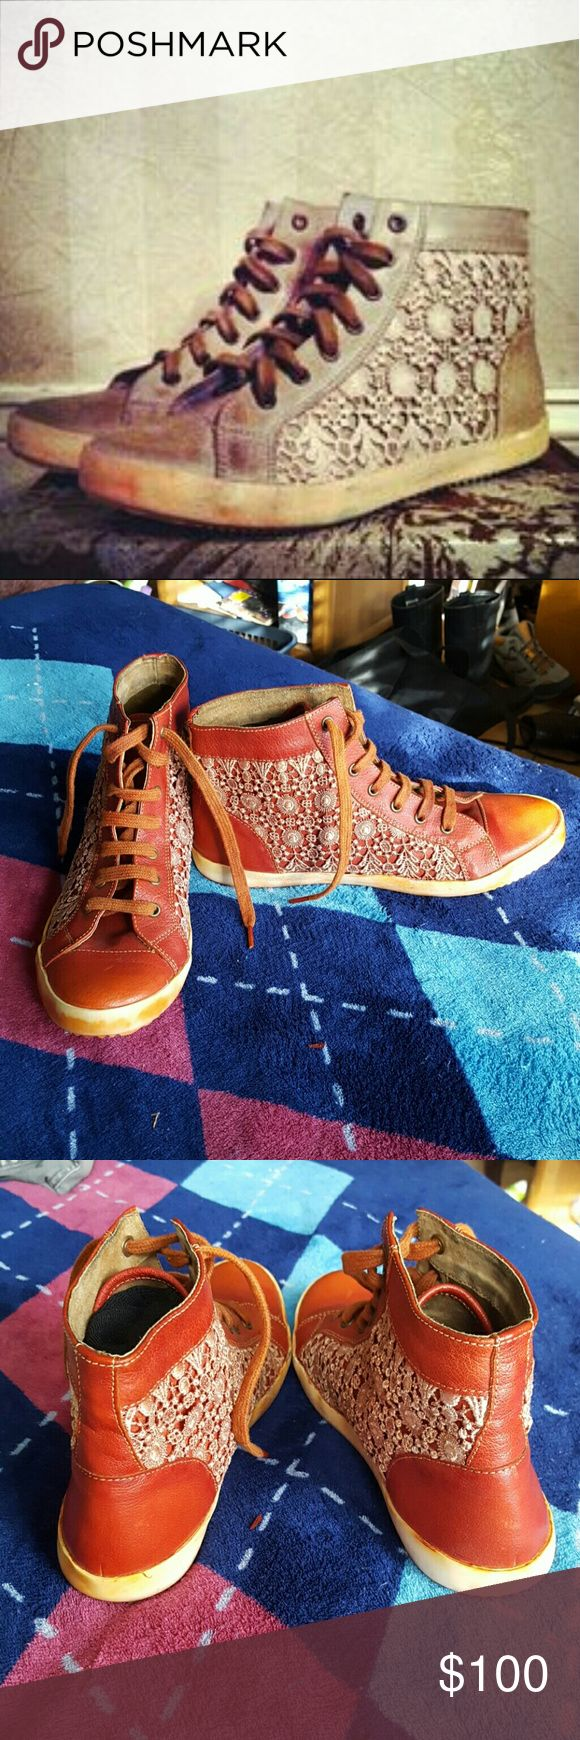 NWOT RARE Free People Atlas Crochet Sneaker Super rare sneaker and color Atlas Crochet Sneaker from Free People. Never worn. Made in Italy. Leather upper with crochet denial on the sides and Lace up front. Burnt orange color. Beautiful shoes that need a good home!! Are sized as a 40 but fit like an 8.5. Free People Shoes Sneakers